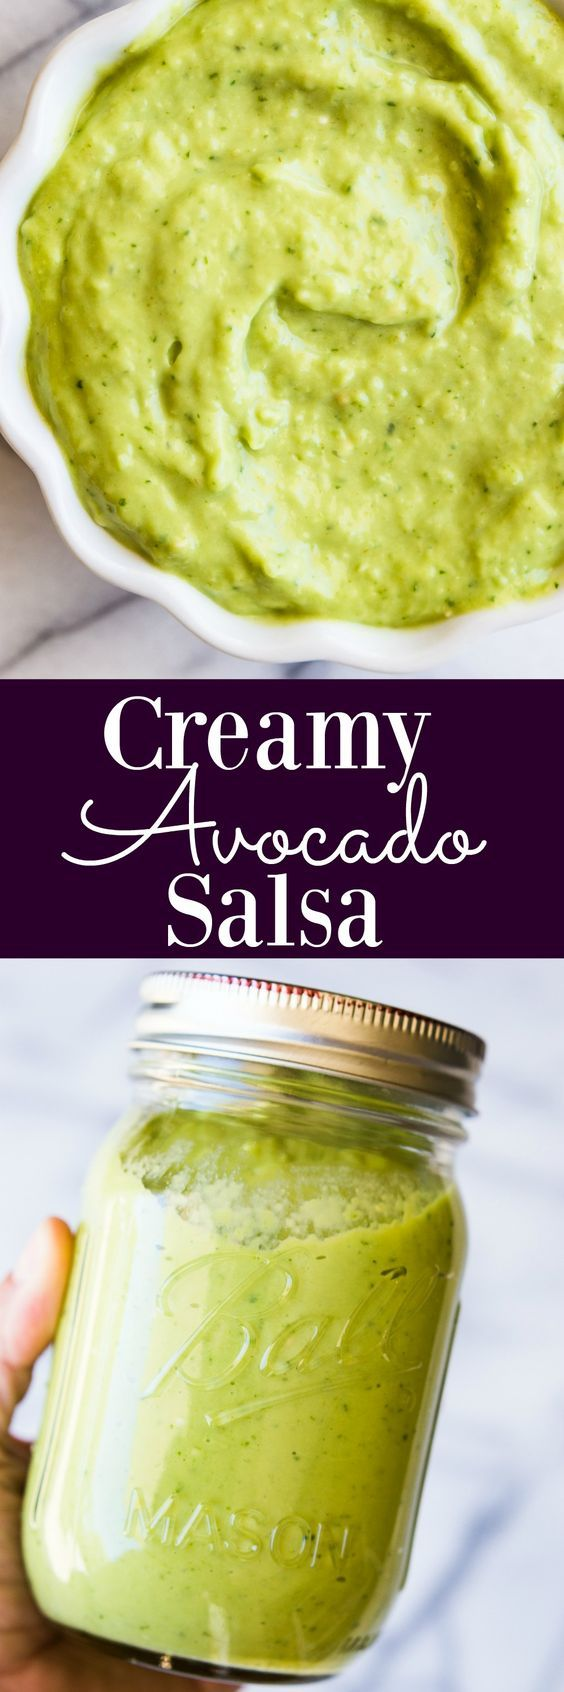 This creamy avocado salsa only takes 5 minutes to make!! The perfect green sauce for tacos, nachos, burritos, salads, or just for dipping chips into!